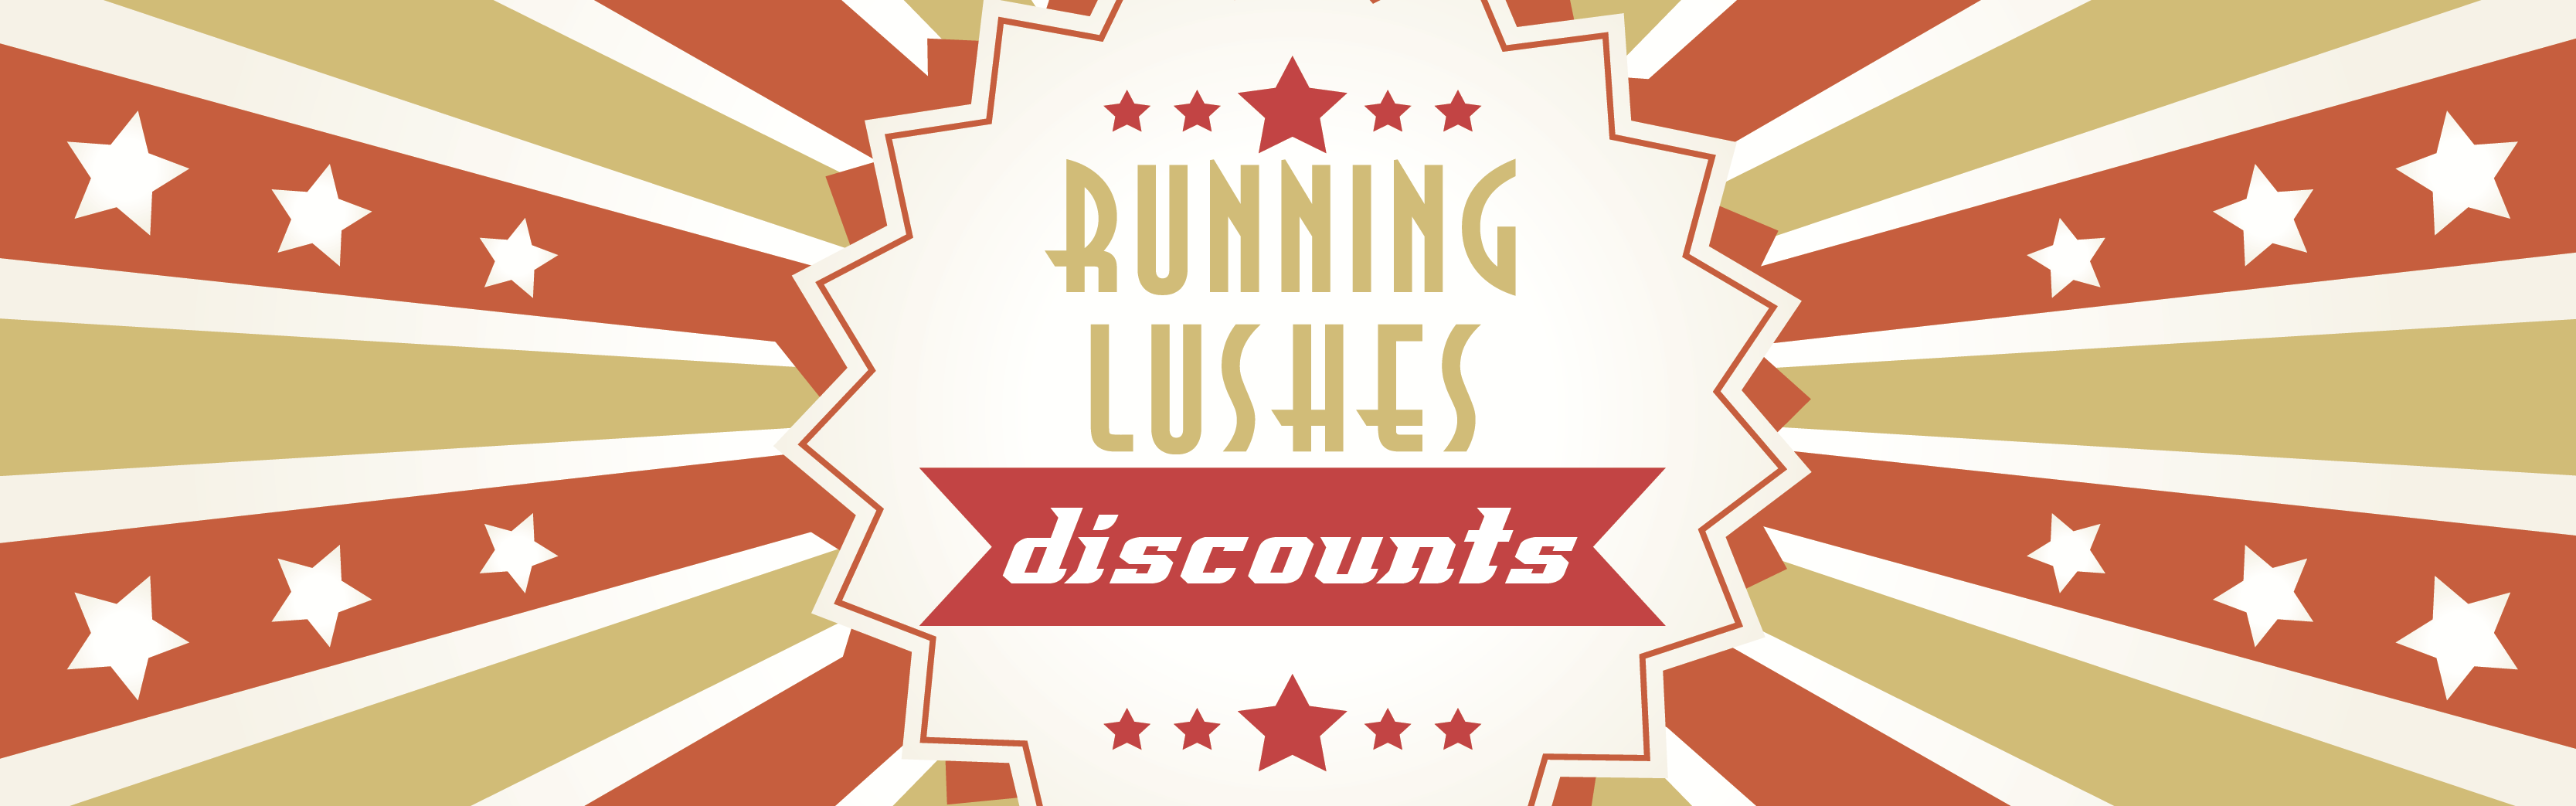 A cheap joke! Save on races and events with Running Lushes discounts